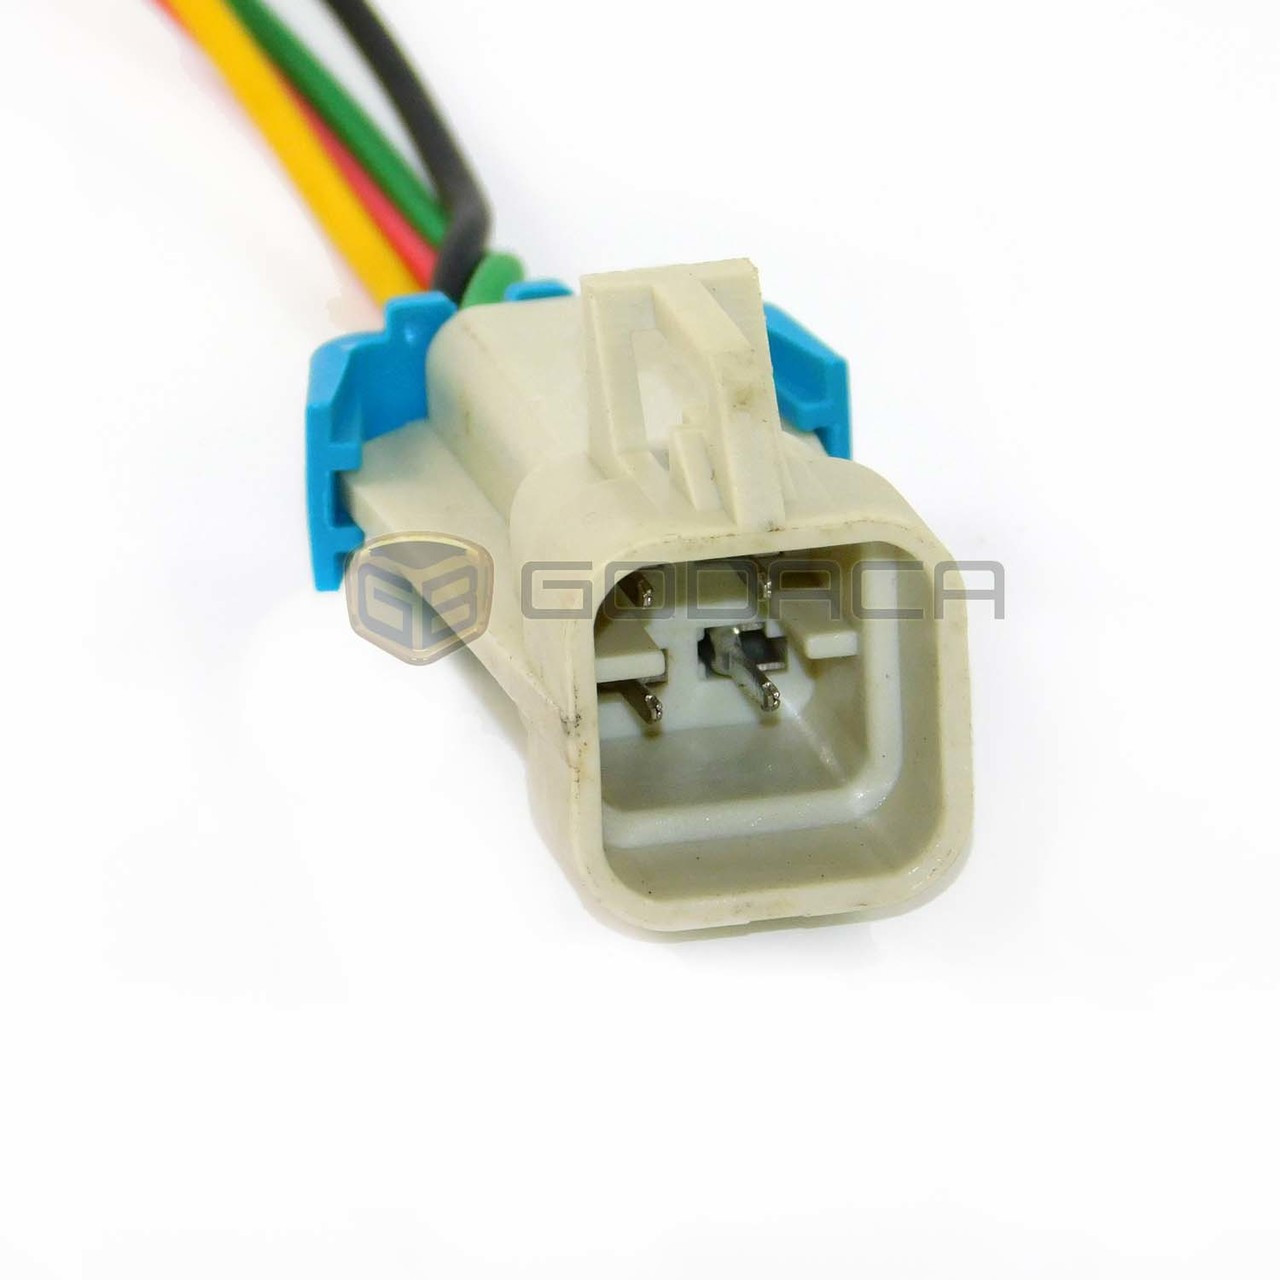 small resolution of  speed sensor wiring harness oxygen 1x 4 way repair connector for gm fuel pump oxygen sensor ls1